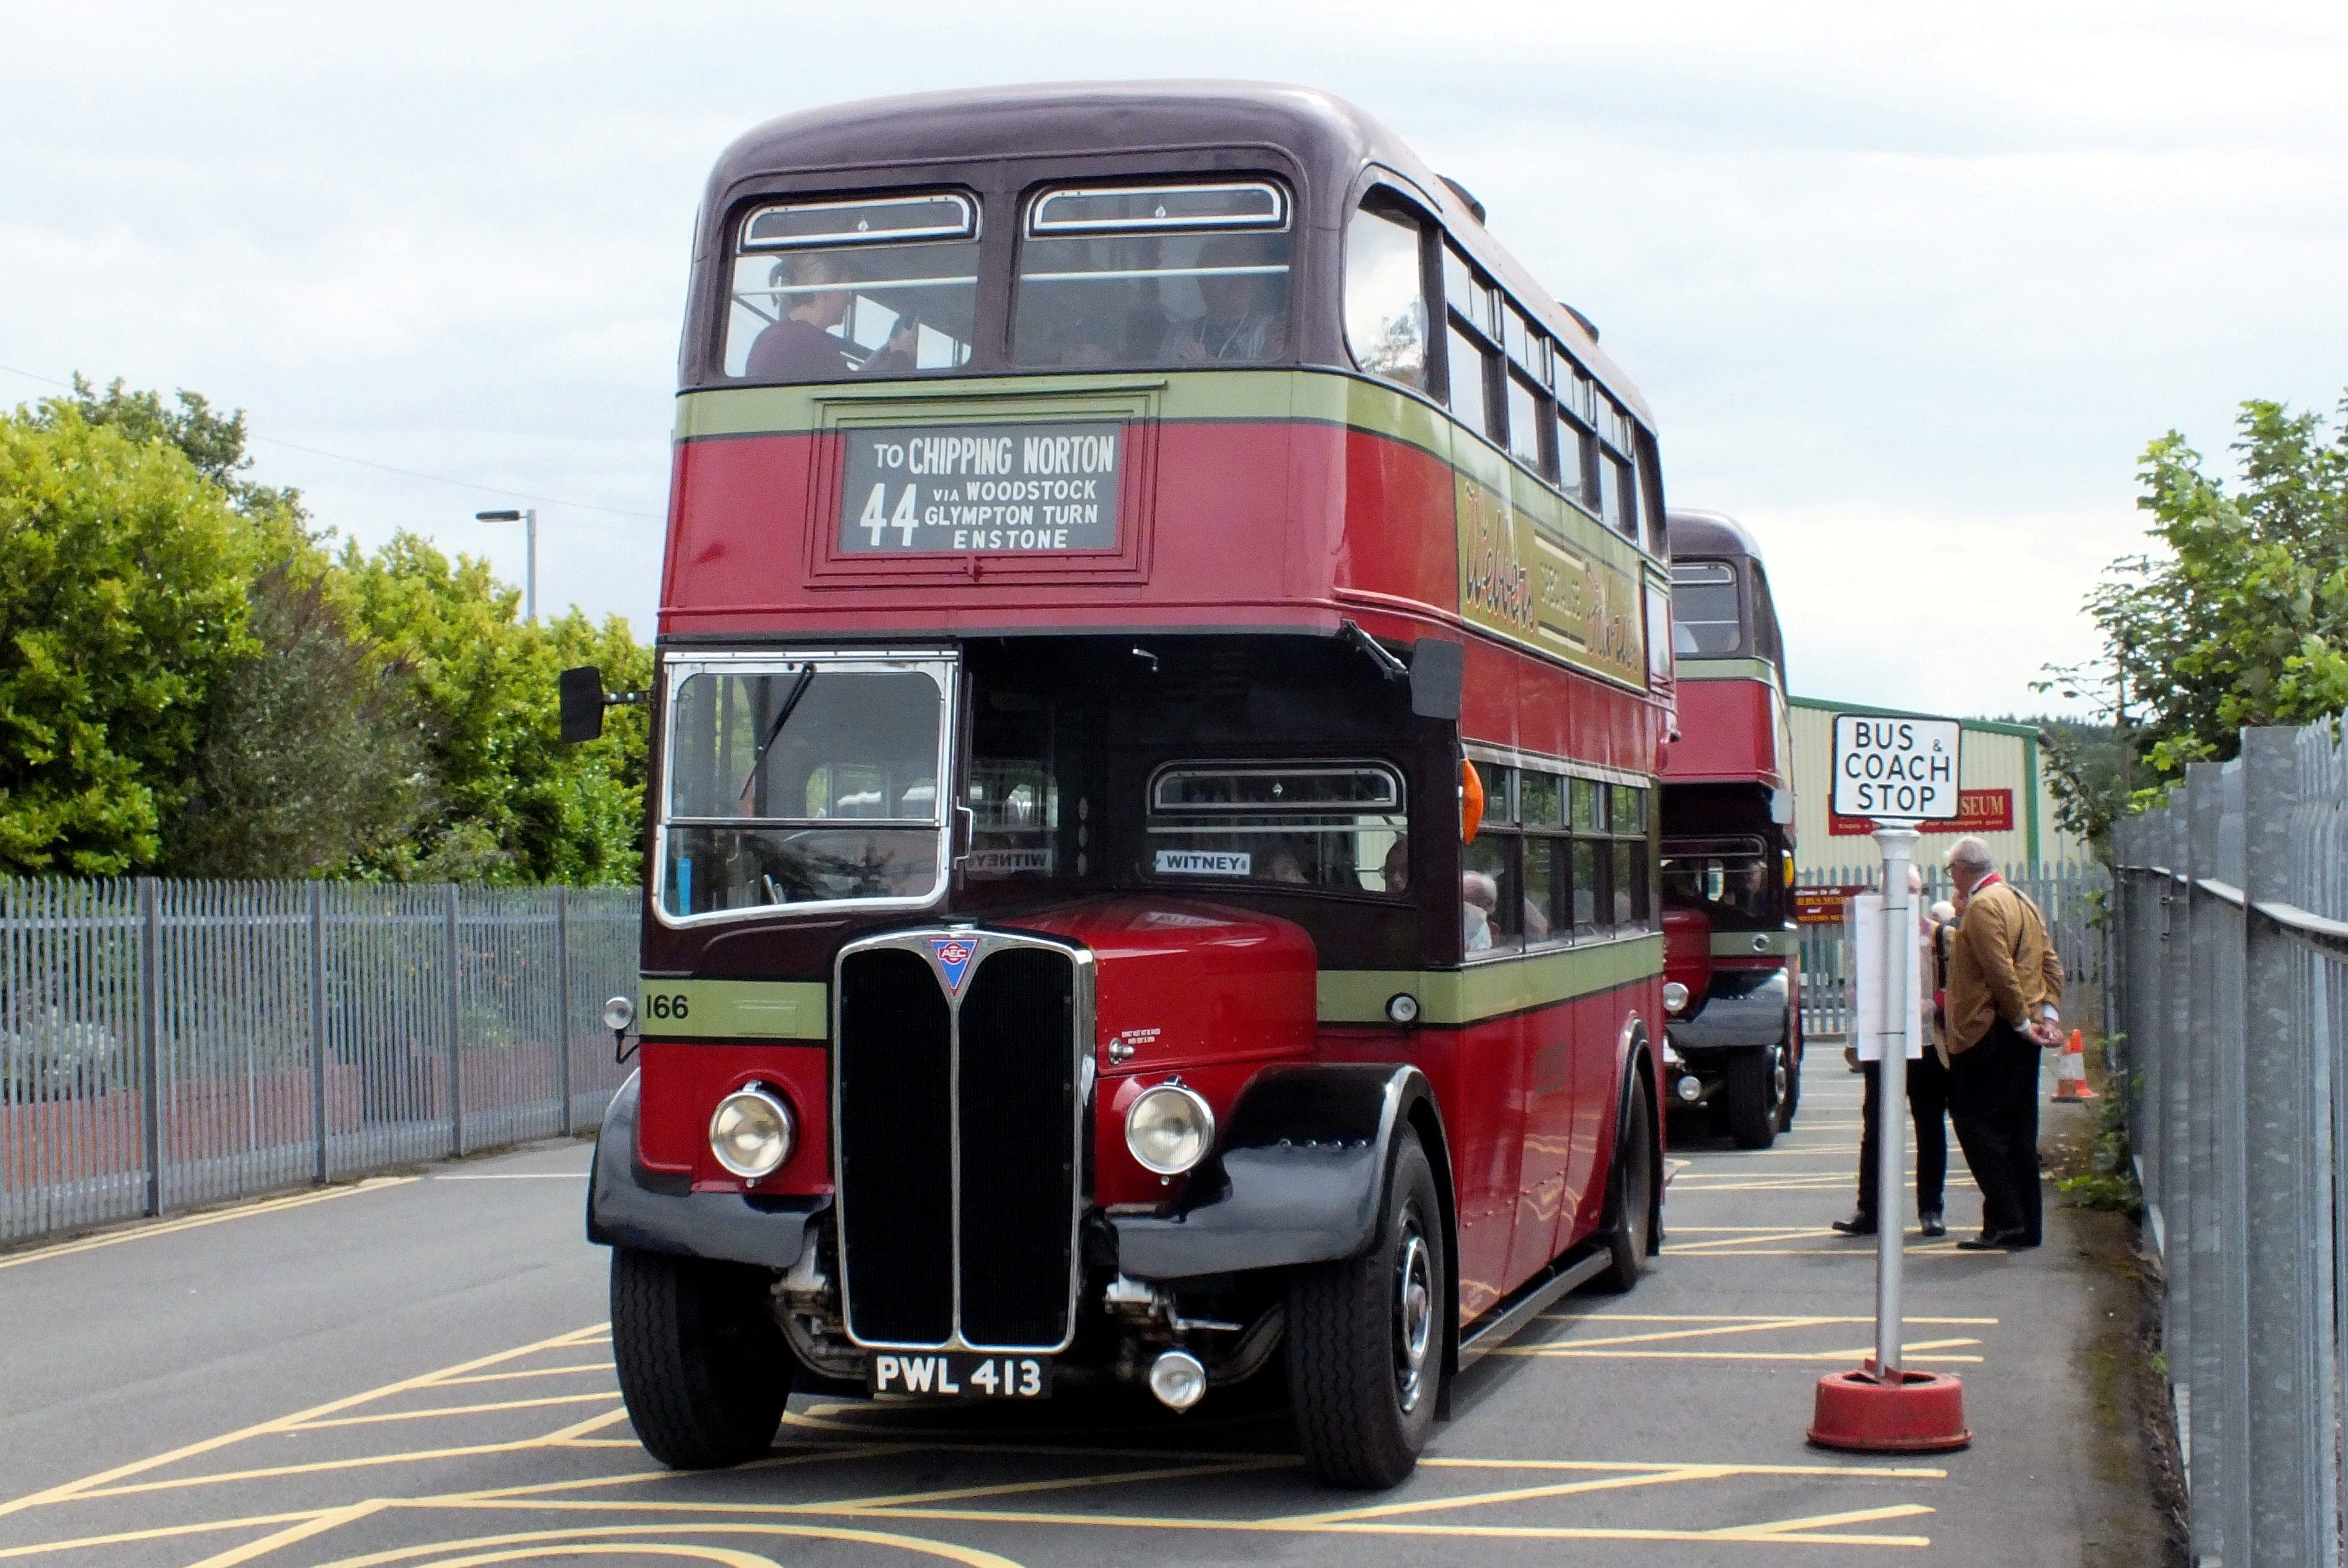 30 July 2017 Oxford Bus Museum, Hanborough 107.jpg